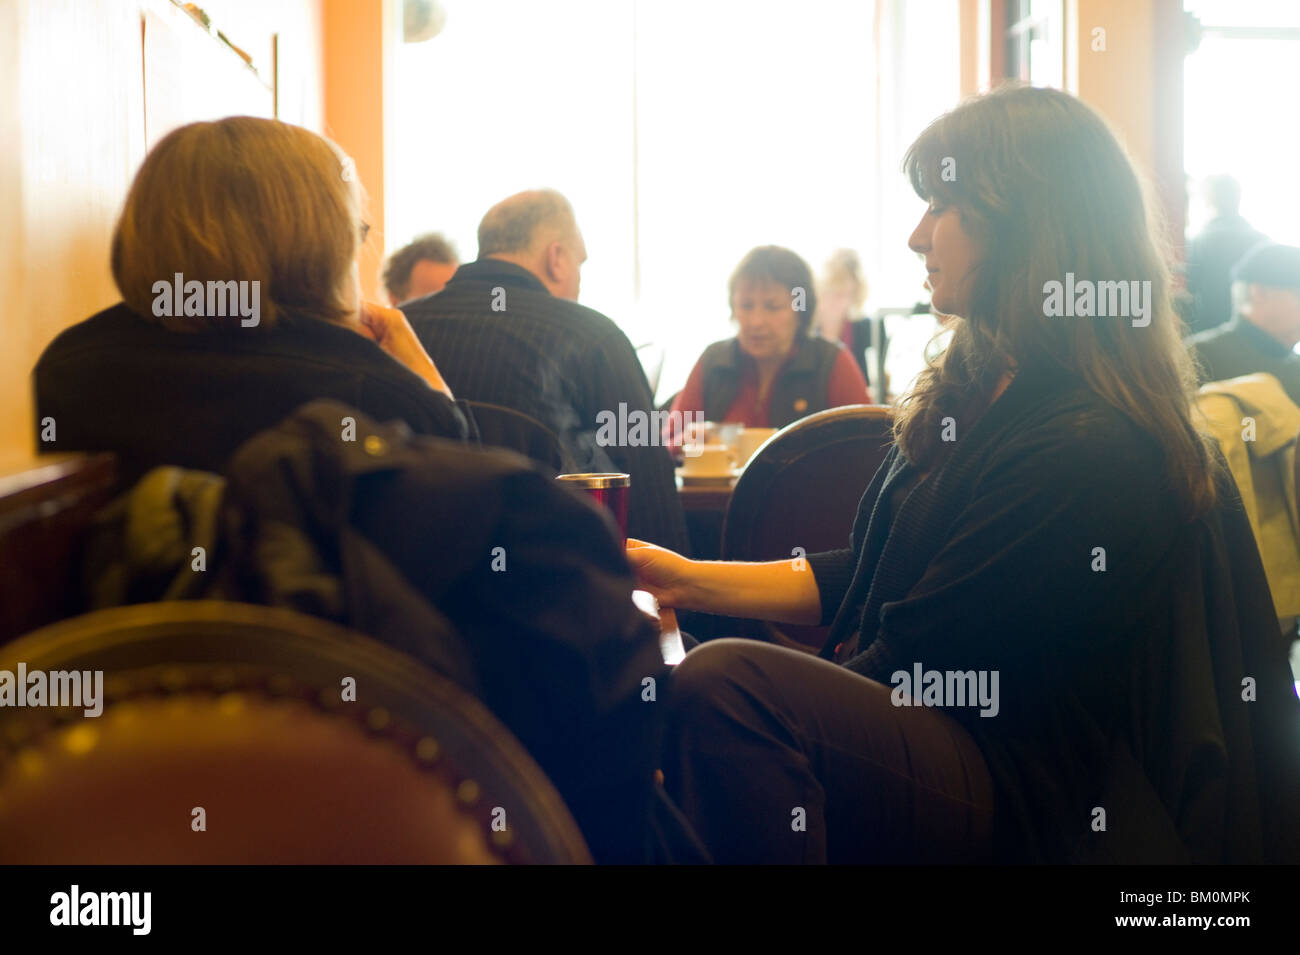 Tables of people talking in brightly-lit café - Stock Image